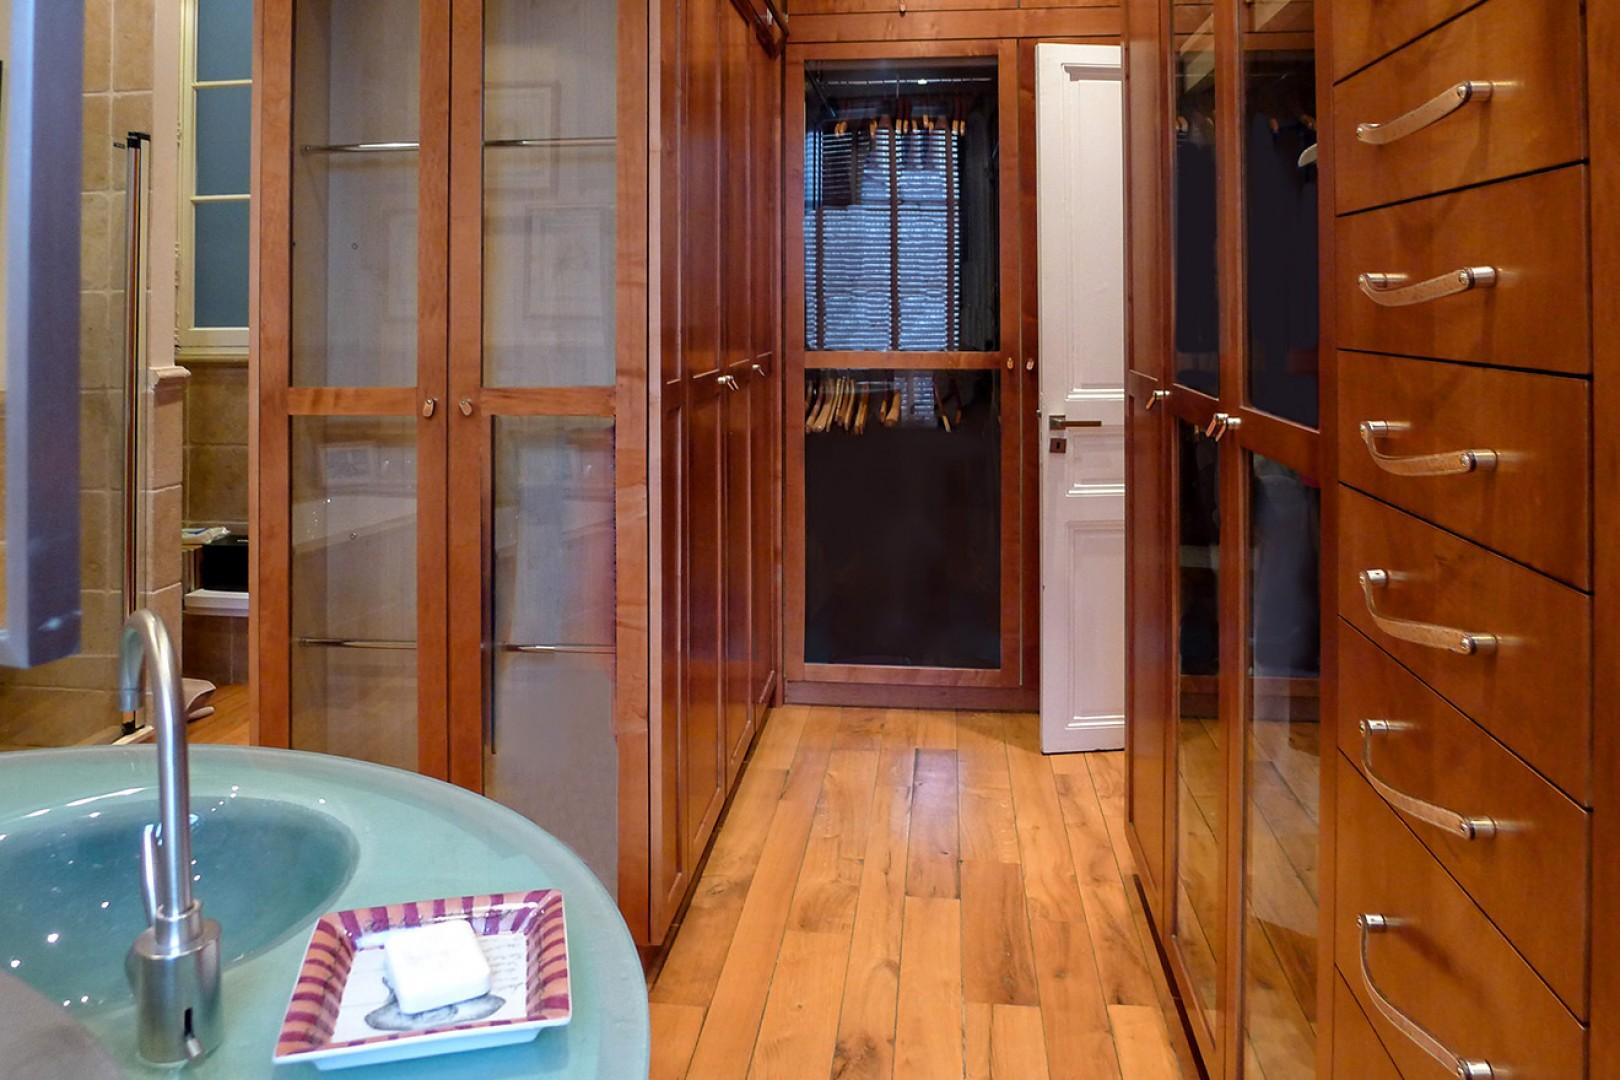 There are also handcrafted teak closets with glass doors.